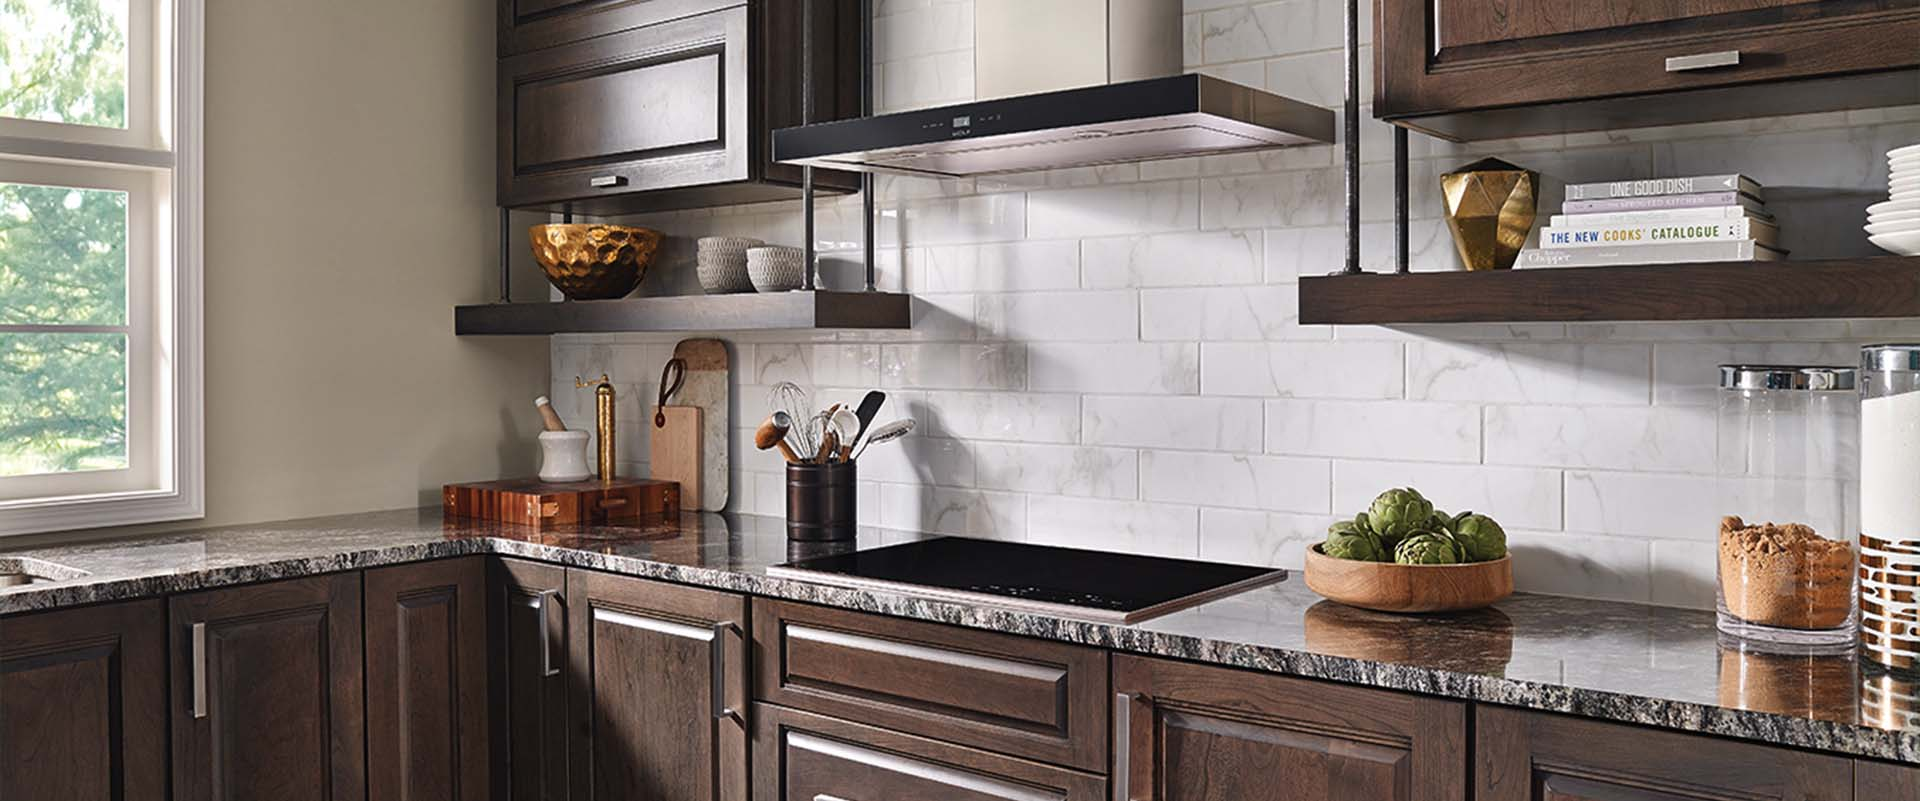 Take It For Granite 9 Popular Black Granite Countertops Msi Blog